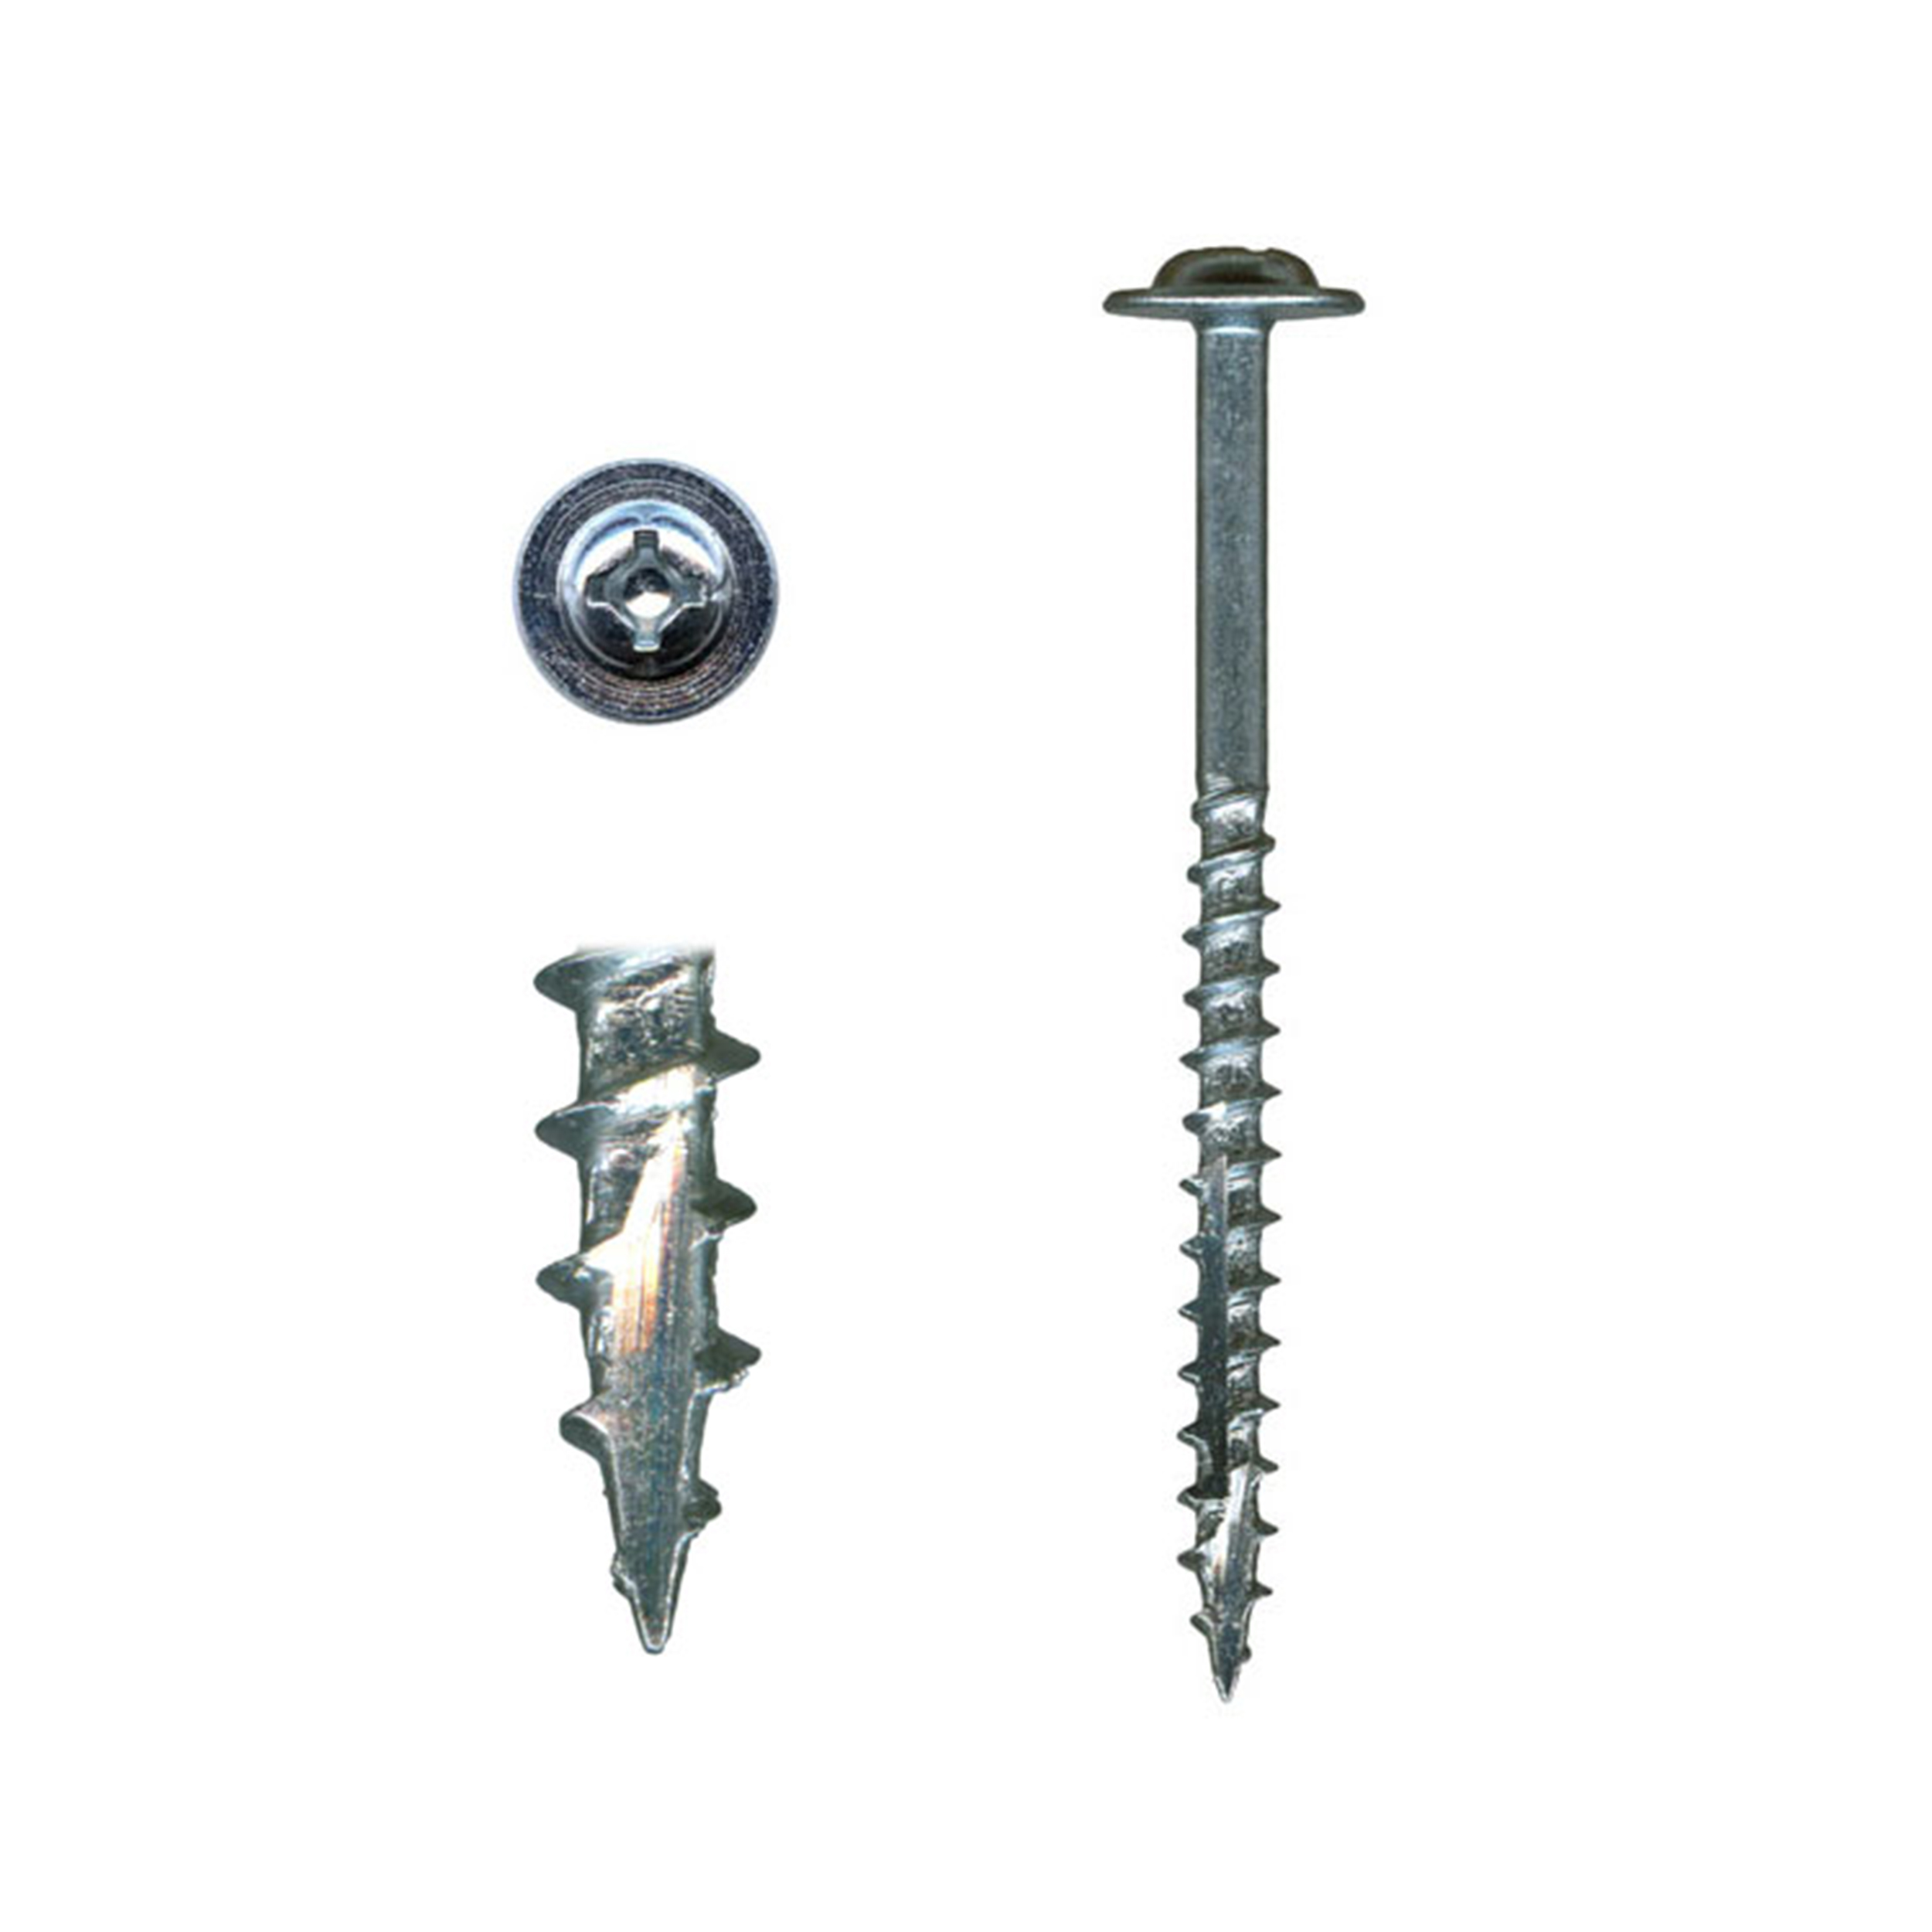 10 x 2-1/2 Cabinet Installation Screws, Washer Head, Combo Drive, Zinc with White Painted, 100-Piece